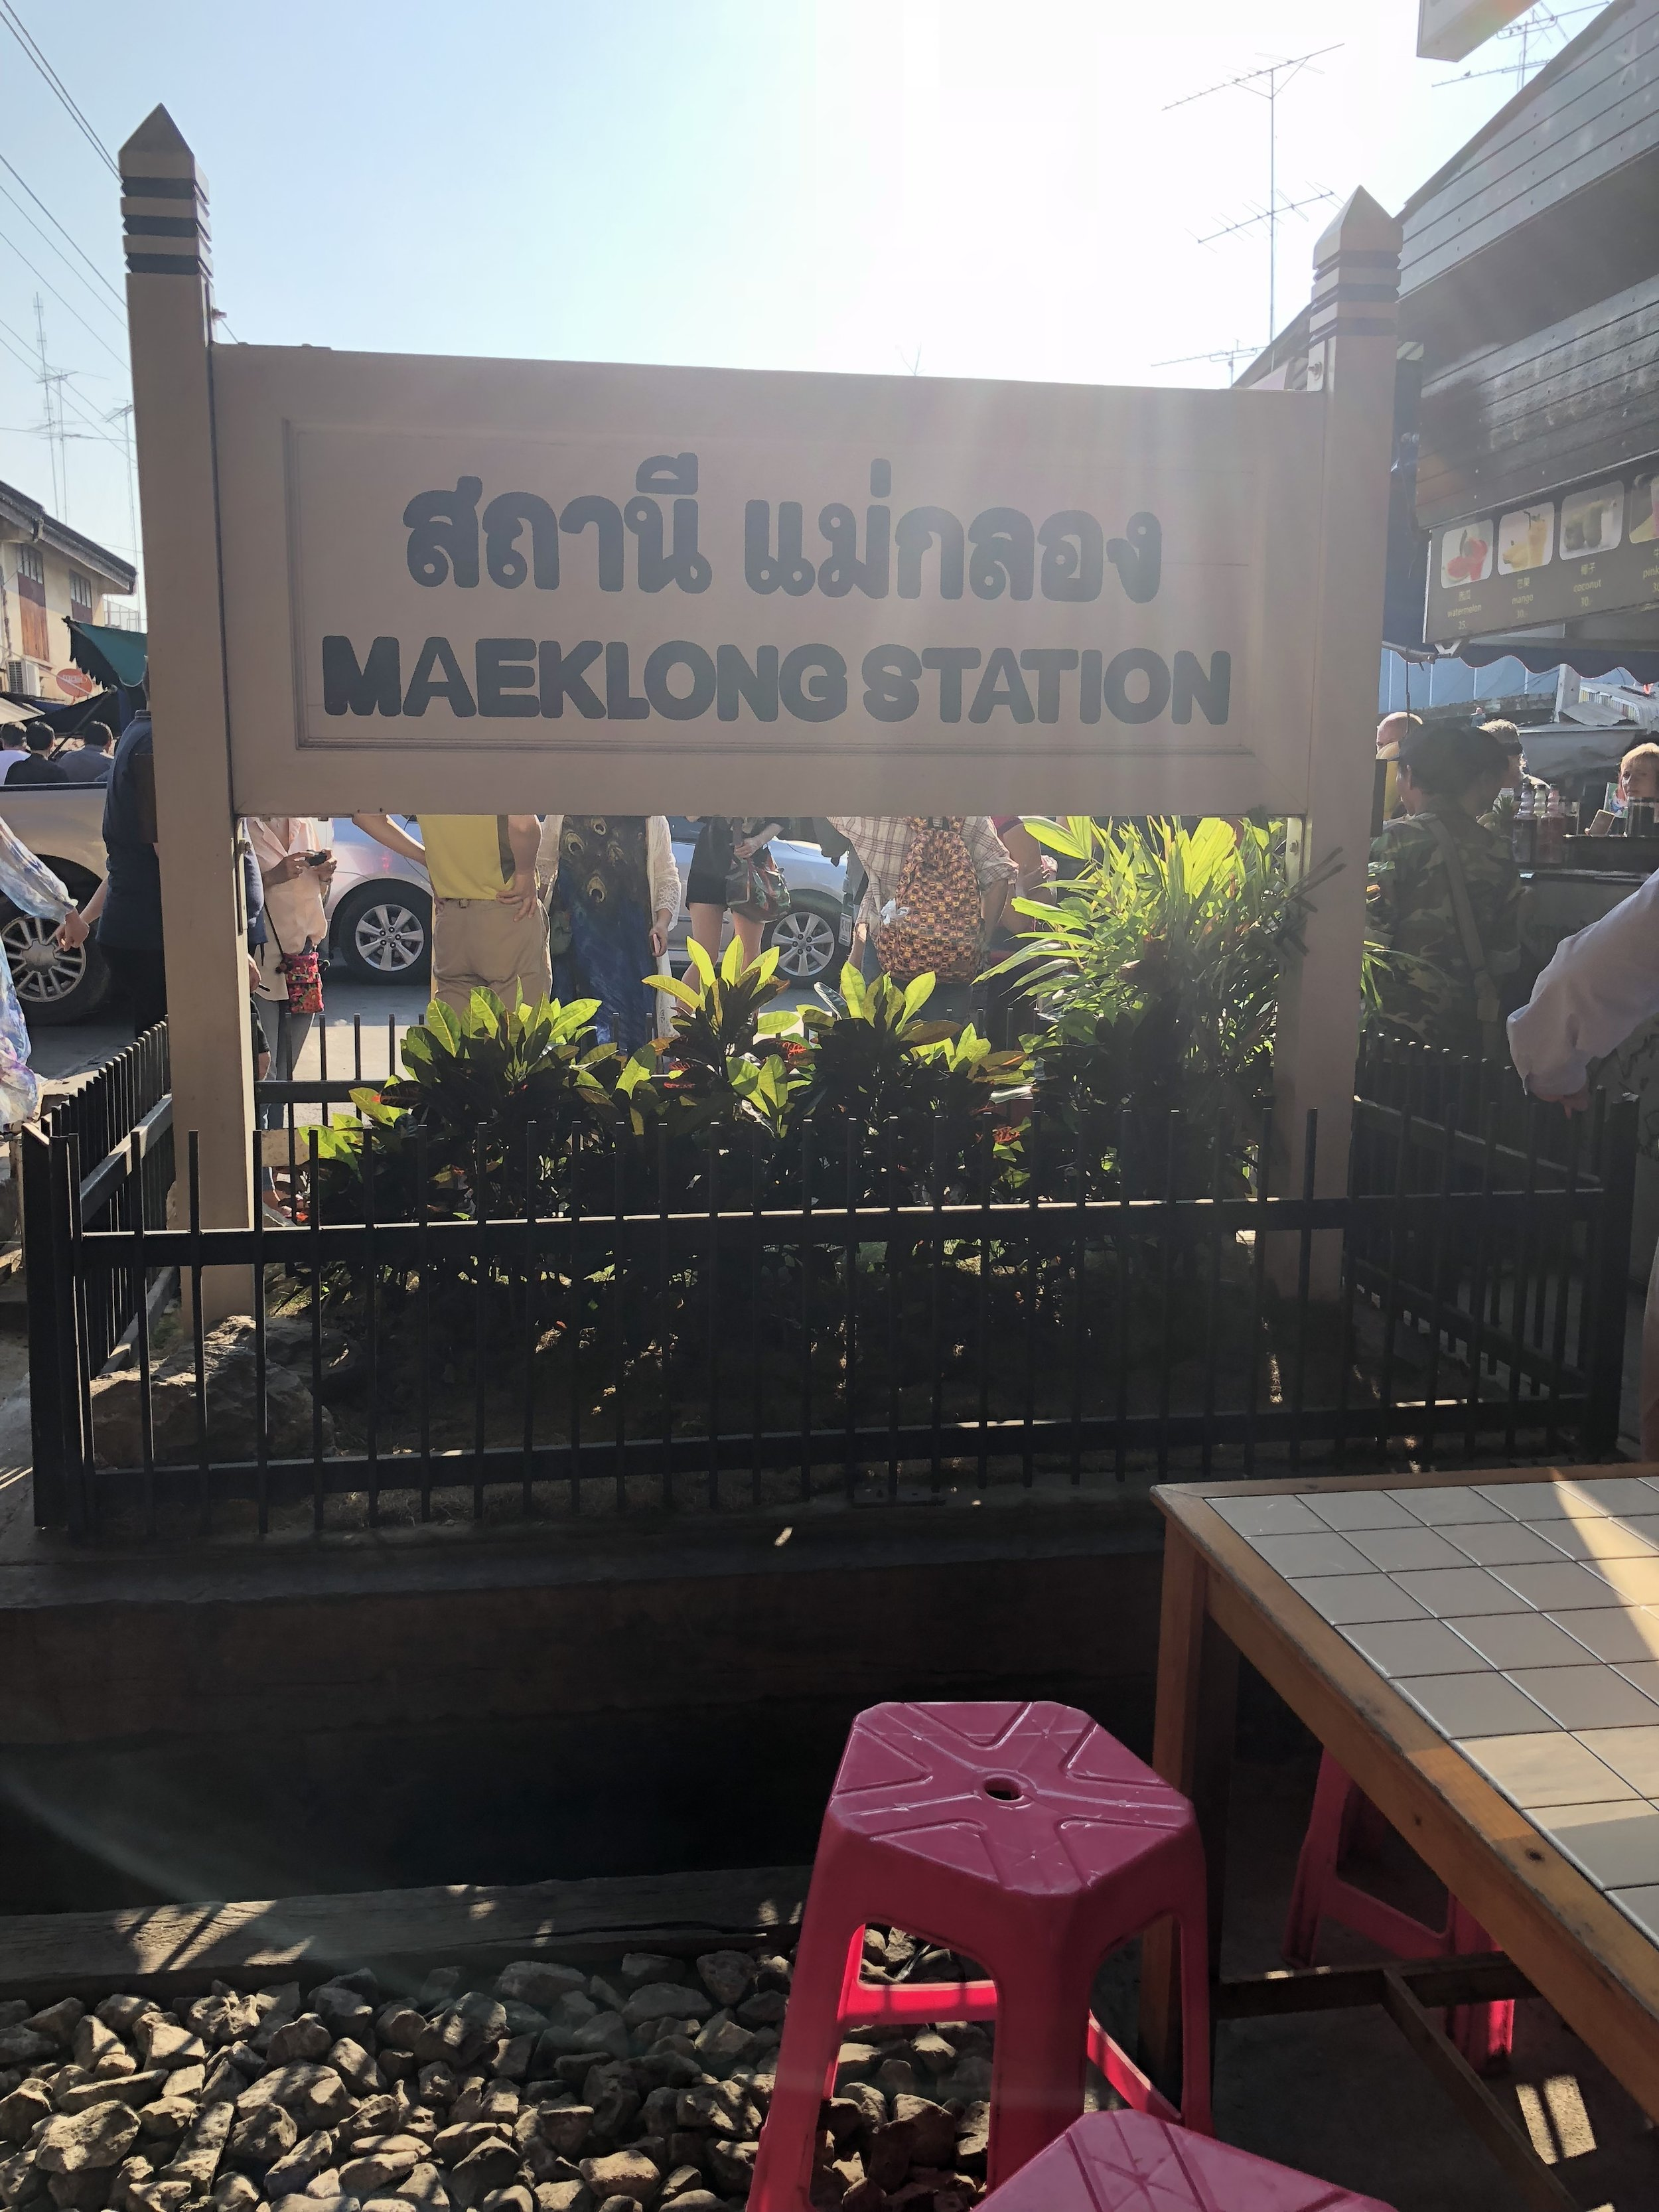 The entrance of the station where the Railway Market is located.